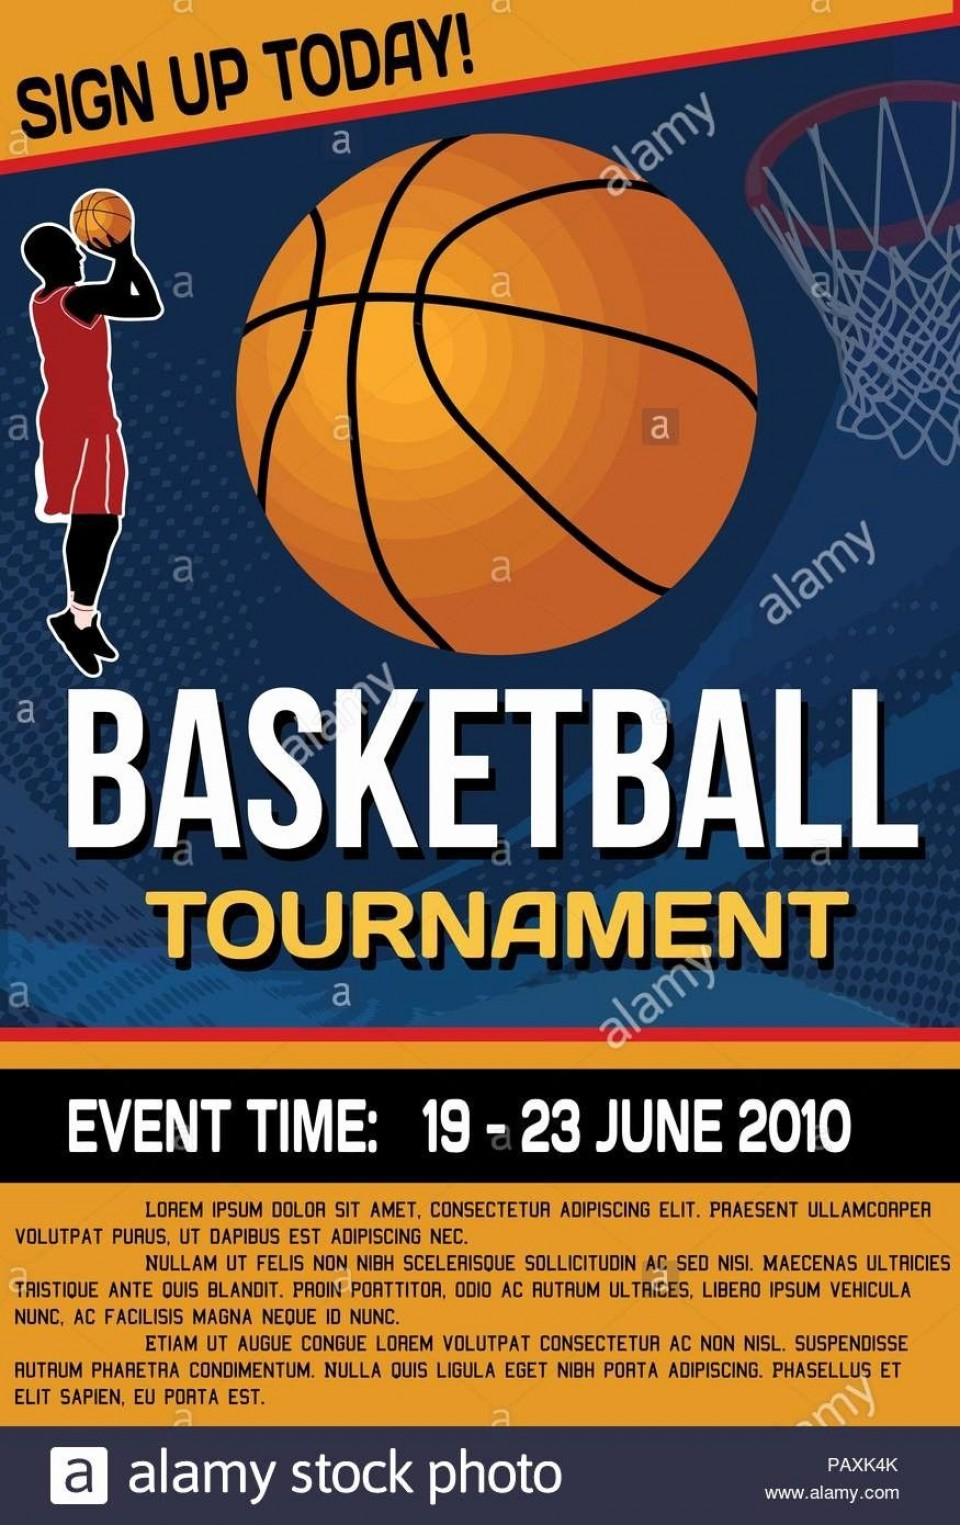 007 Fearsome Basketball Tournament Flyer Template Design  3 On Free960